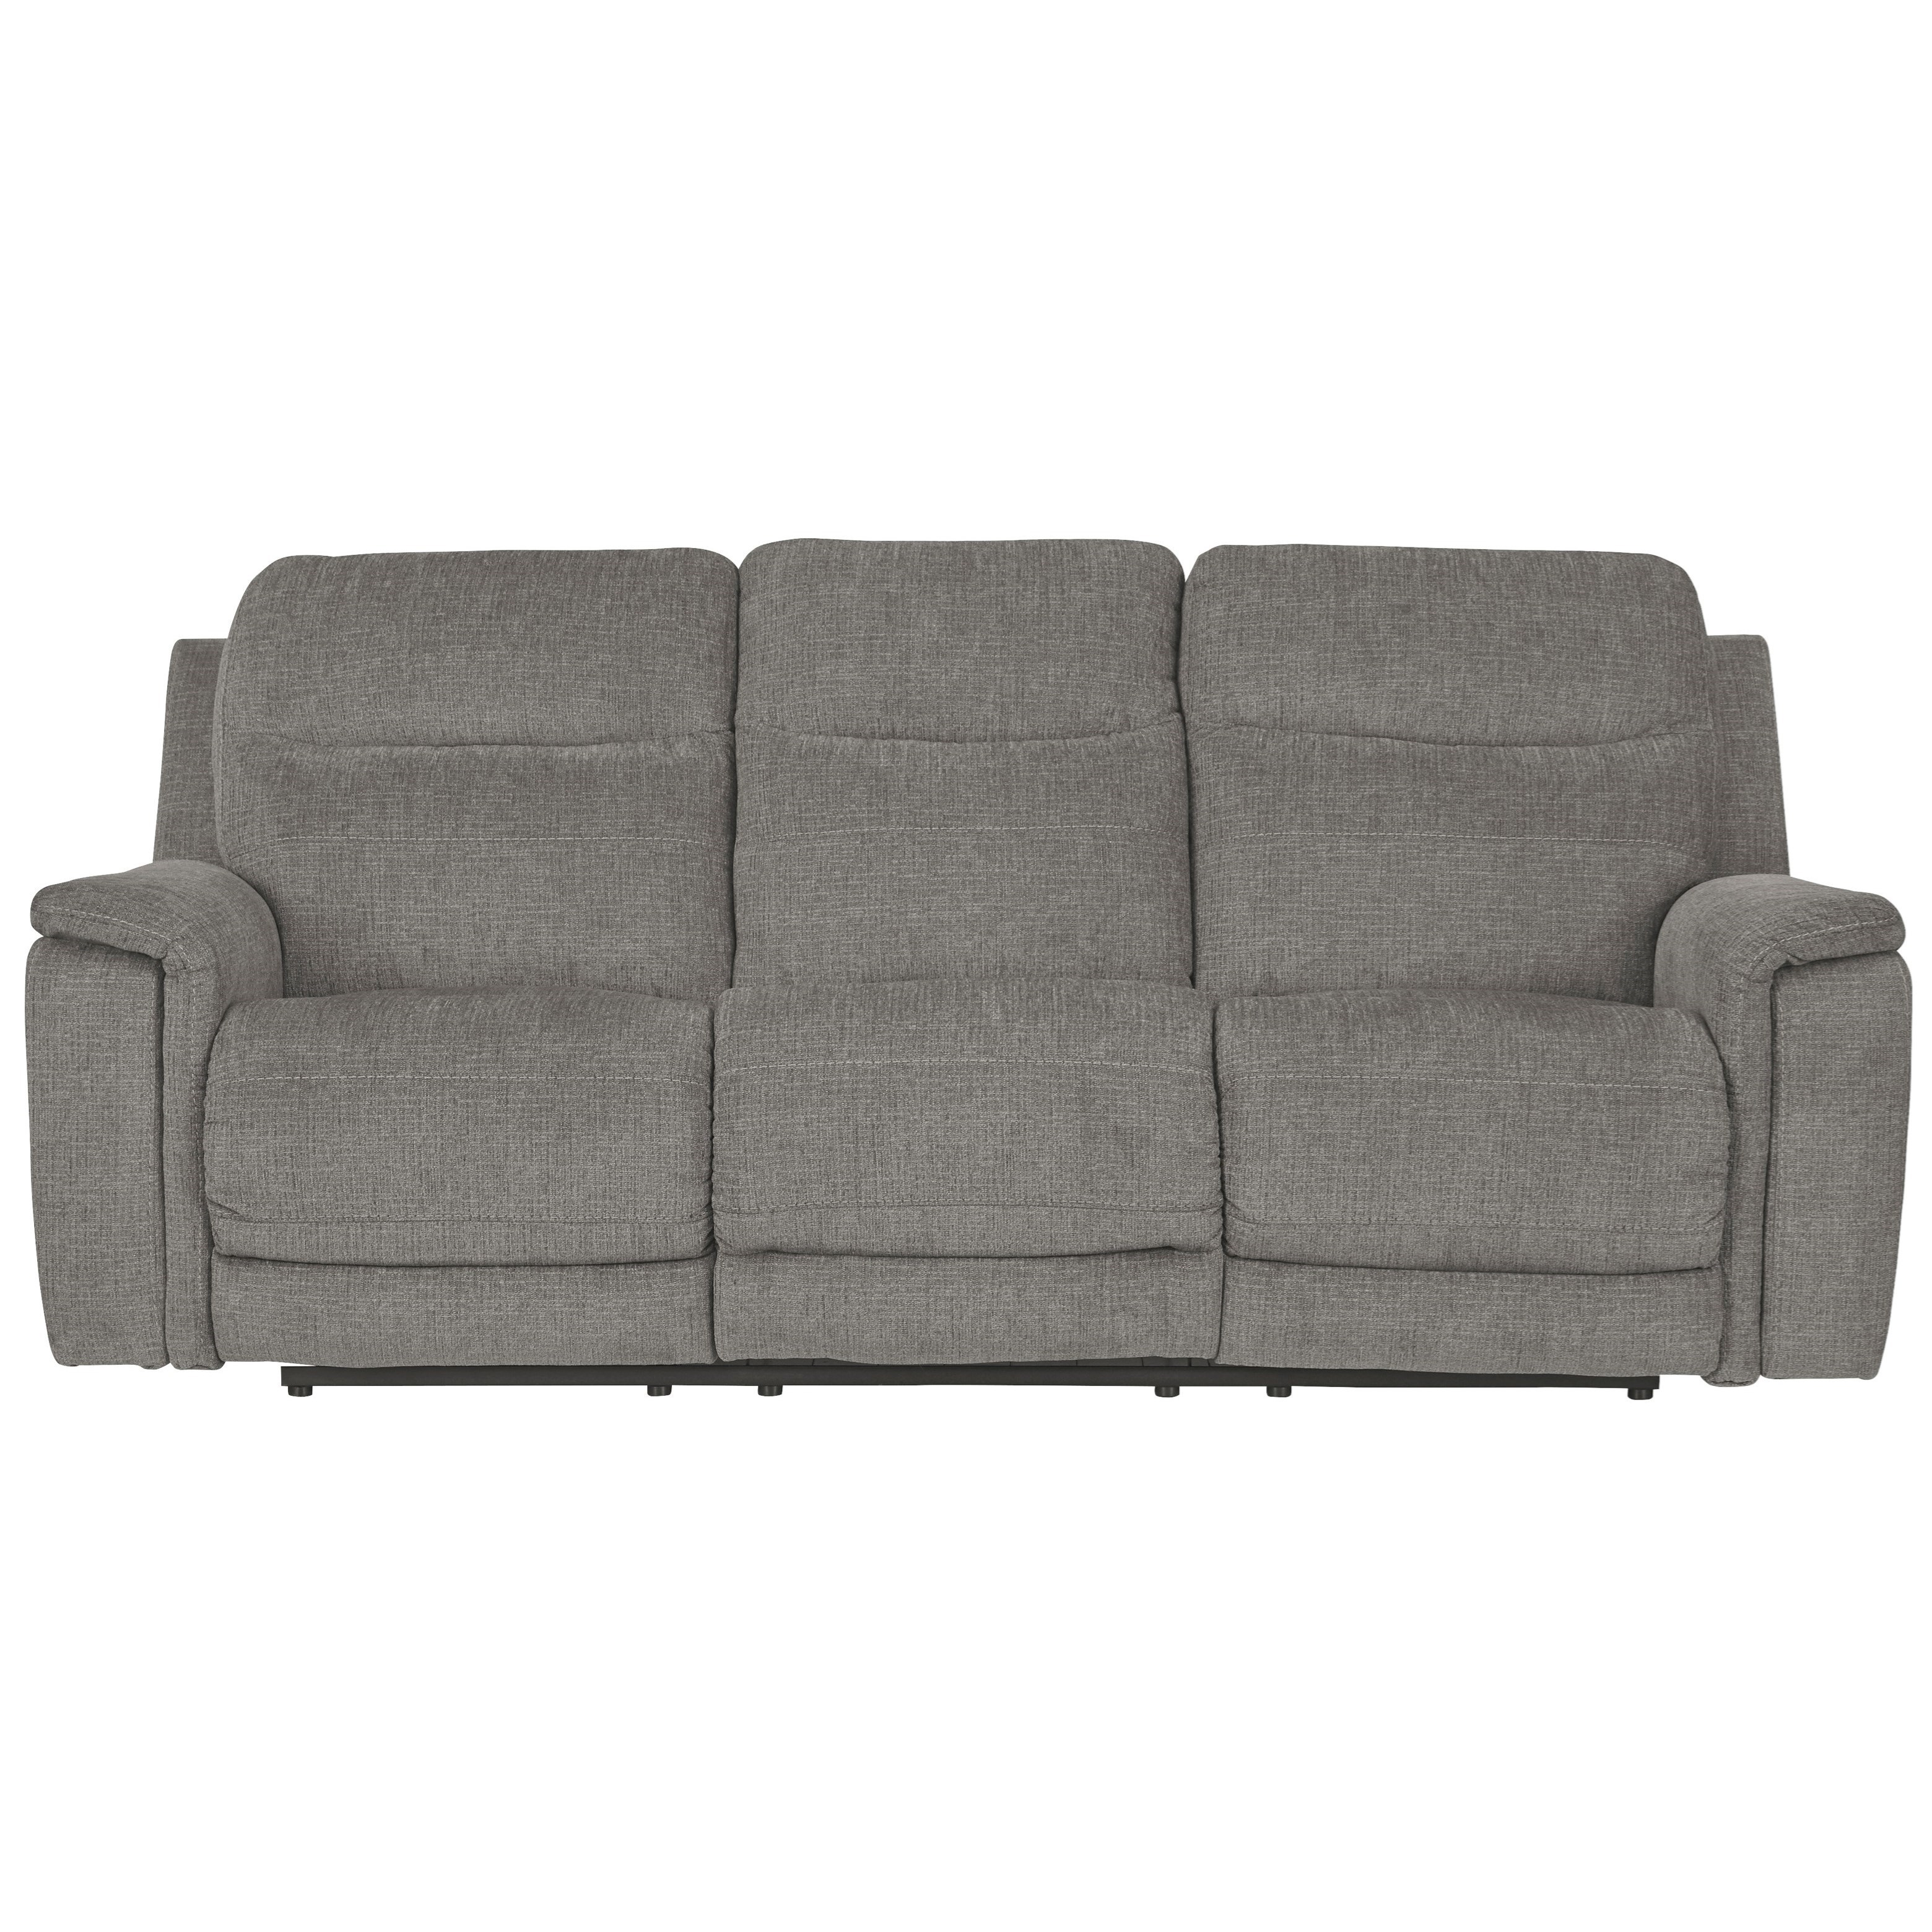 Mouttrie Power Reclining Sofa w/ Adjustable Headrests by Ashley (Signature Design) at Johnny Janosik